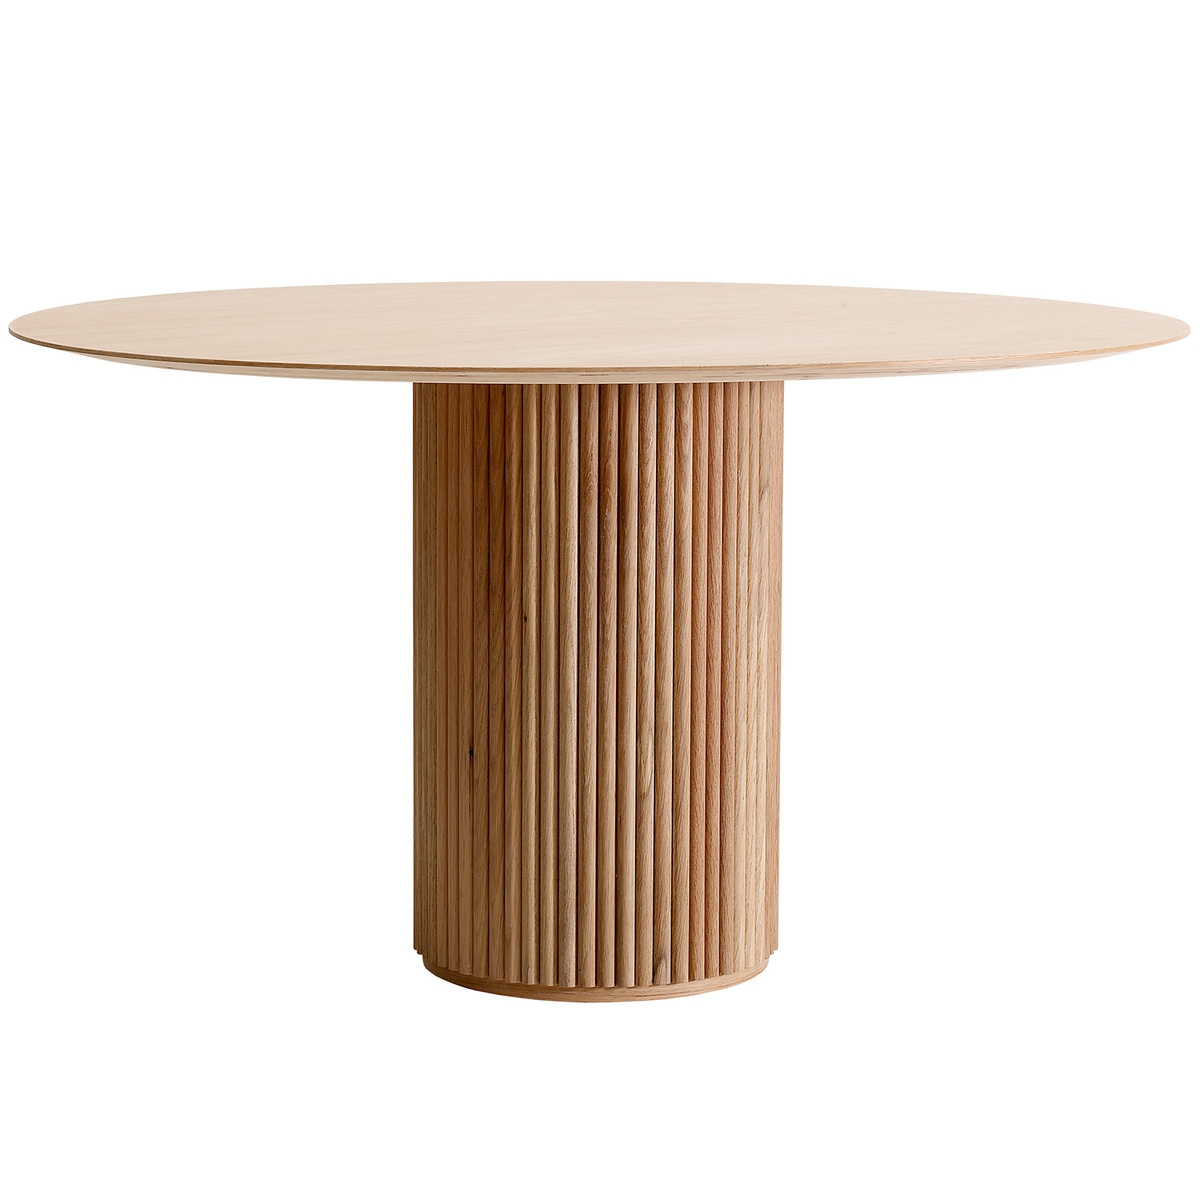 asplund palais royal dining table white stained oak